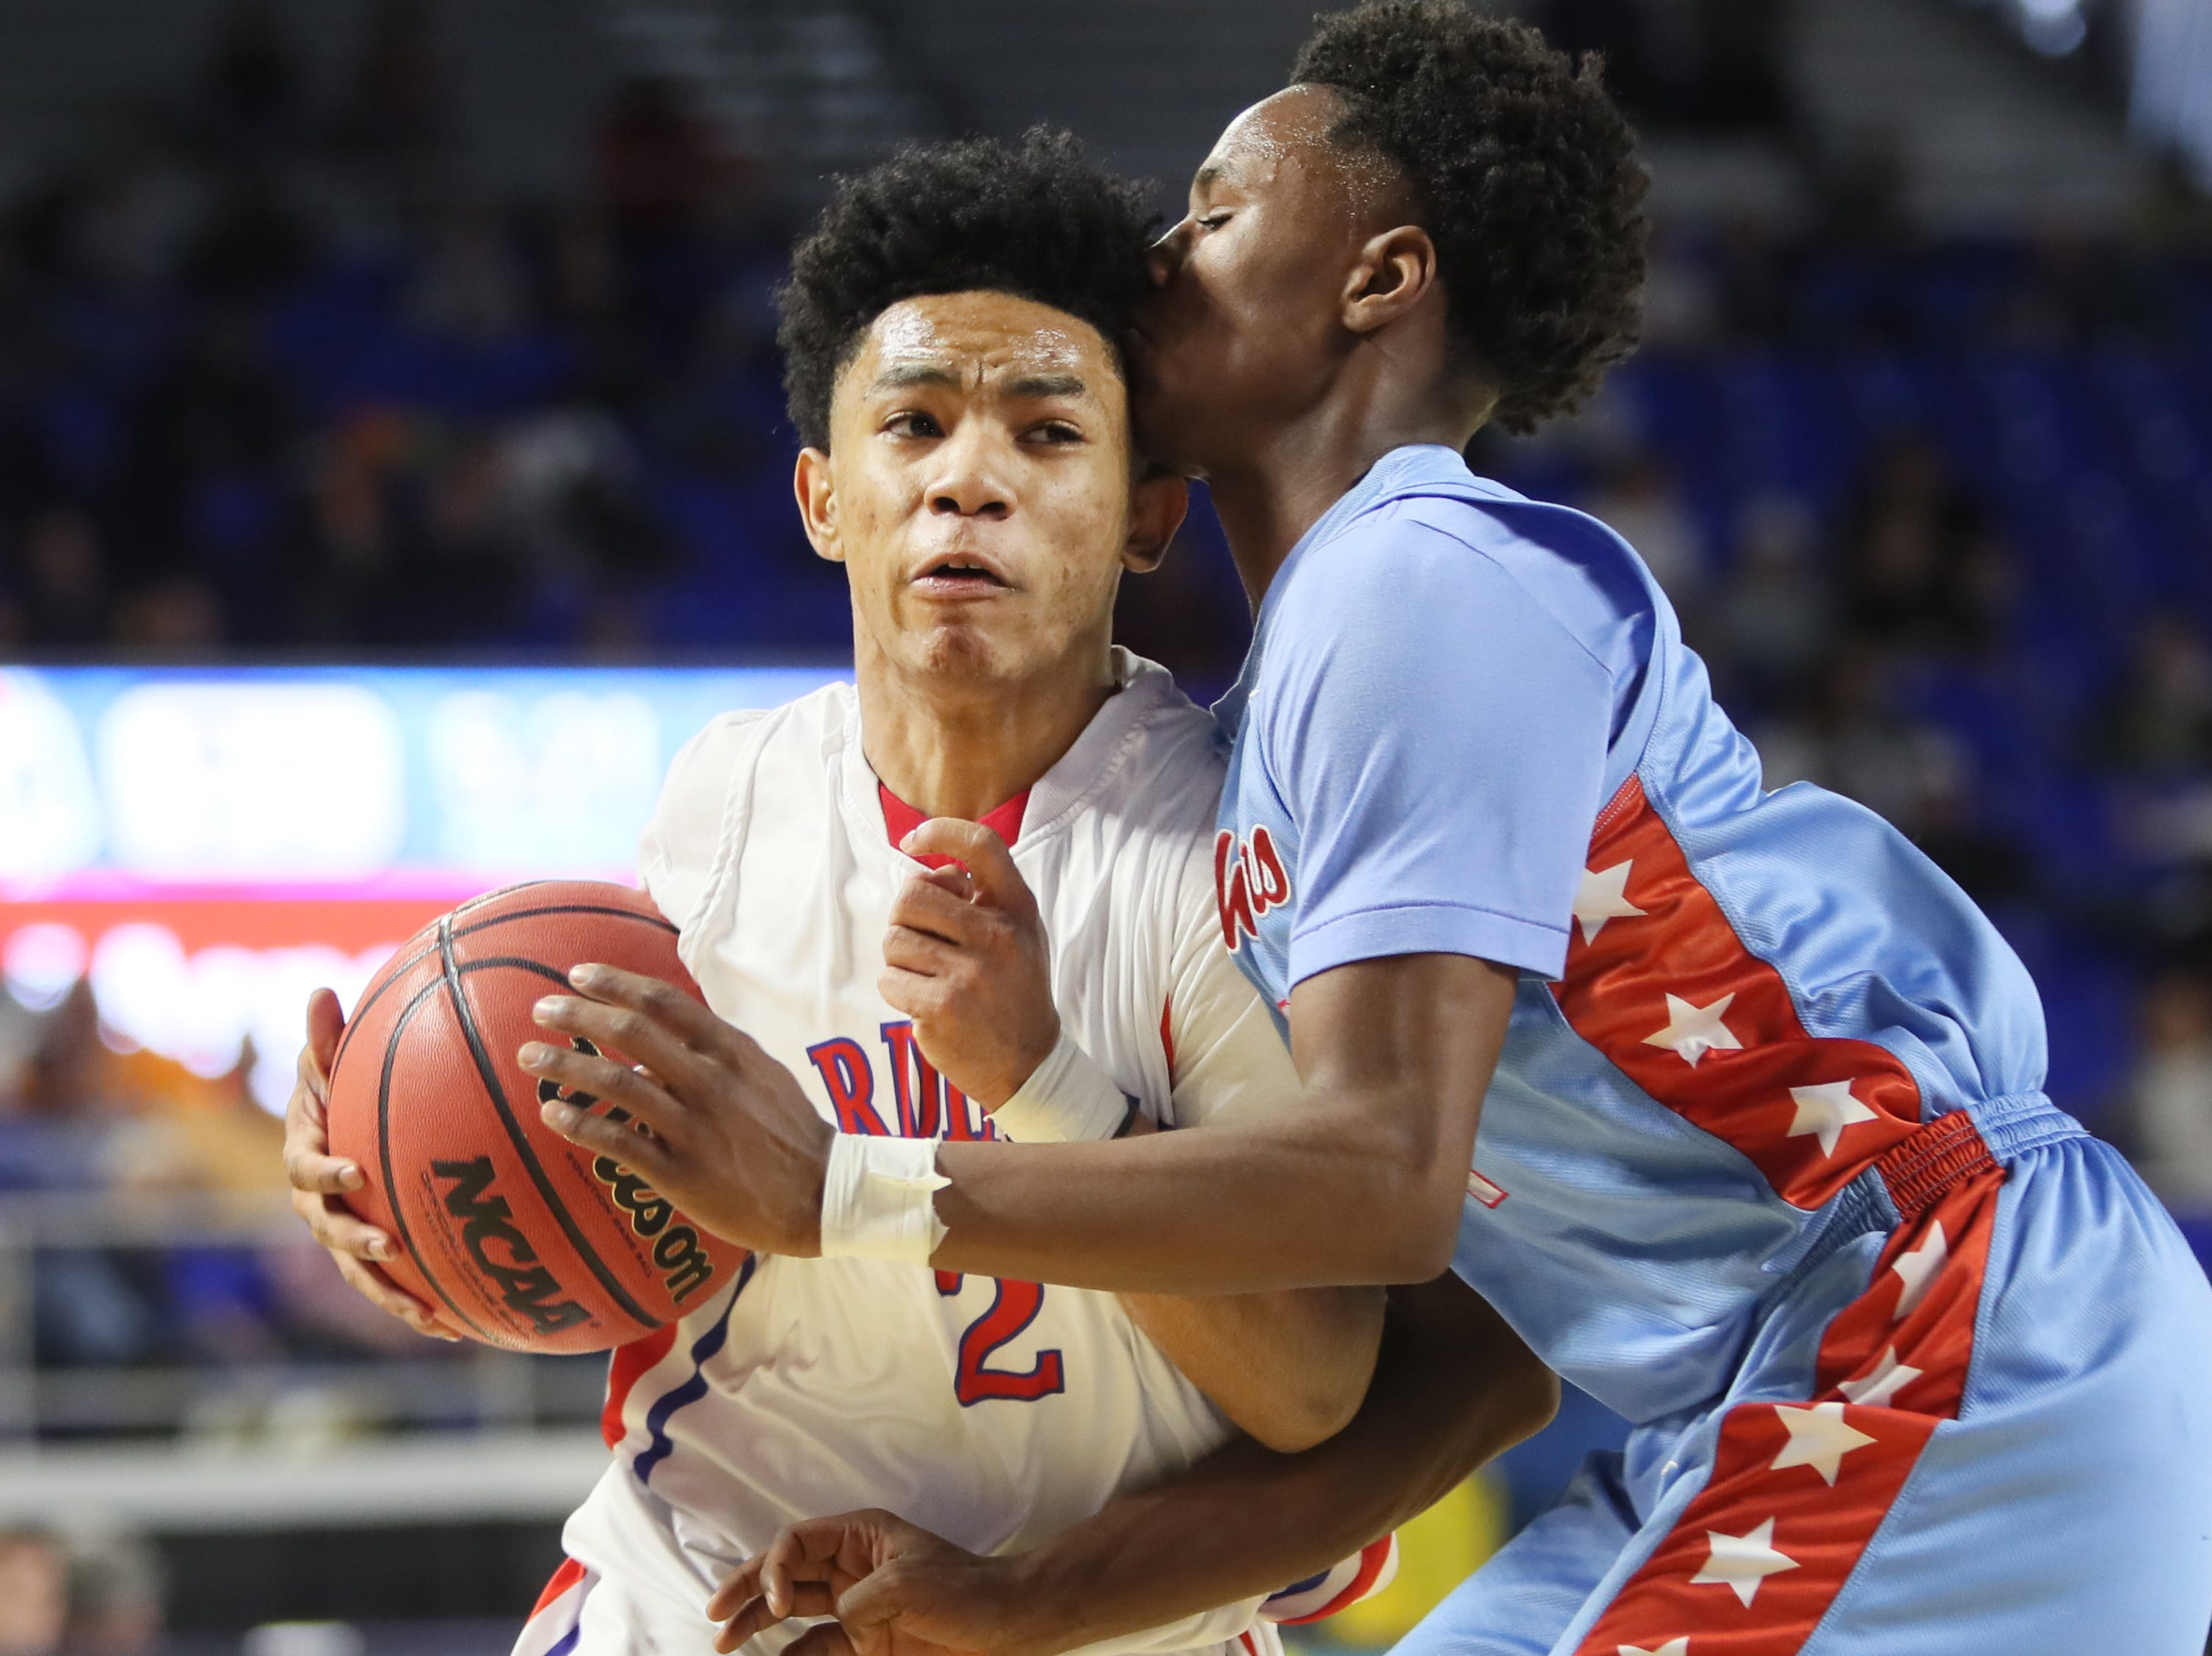 Wooddale's Kevin Brown drives past Brainerd's Remeo Hubbard during the Class AA boys basketball state semifinal at the Murphy Center in Murfreesboro, Tenn. on Thursday, March 14, 2019.